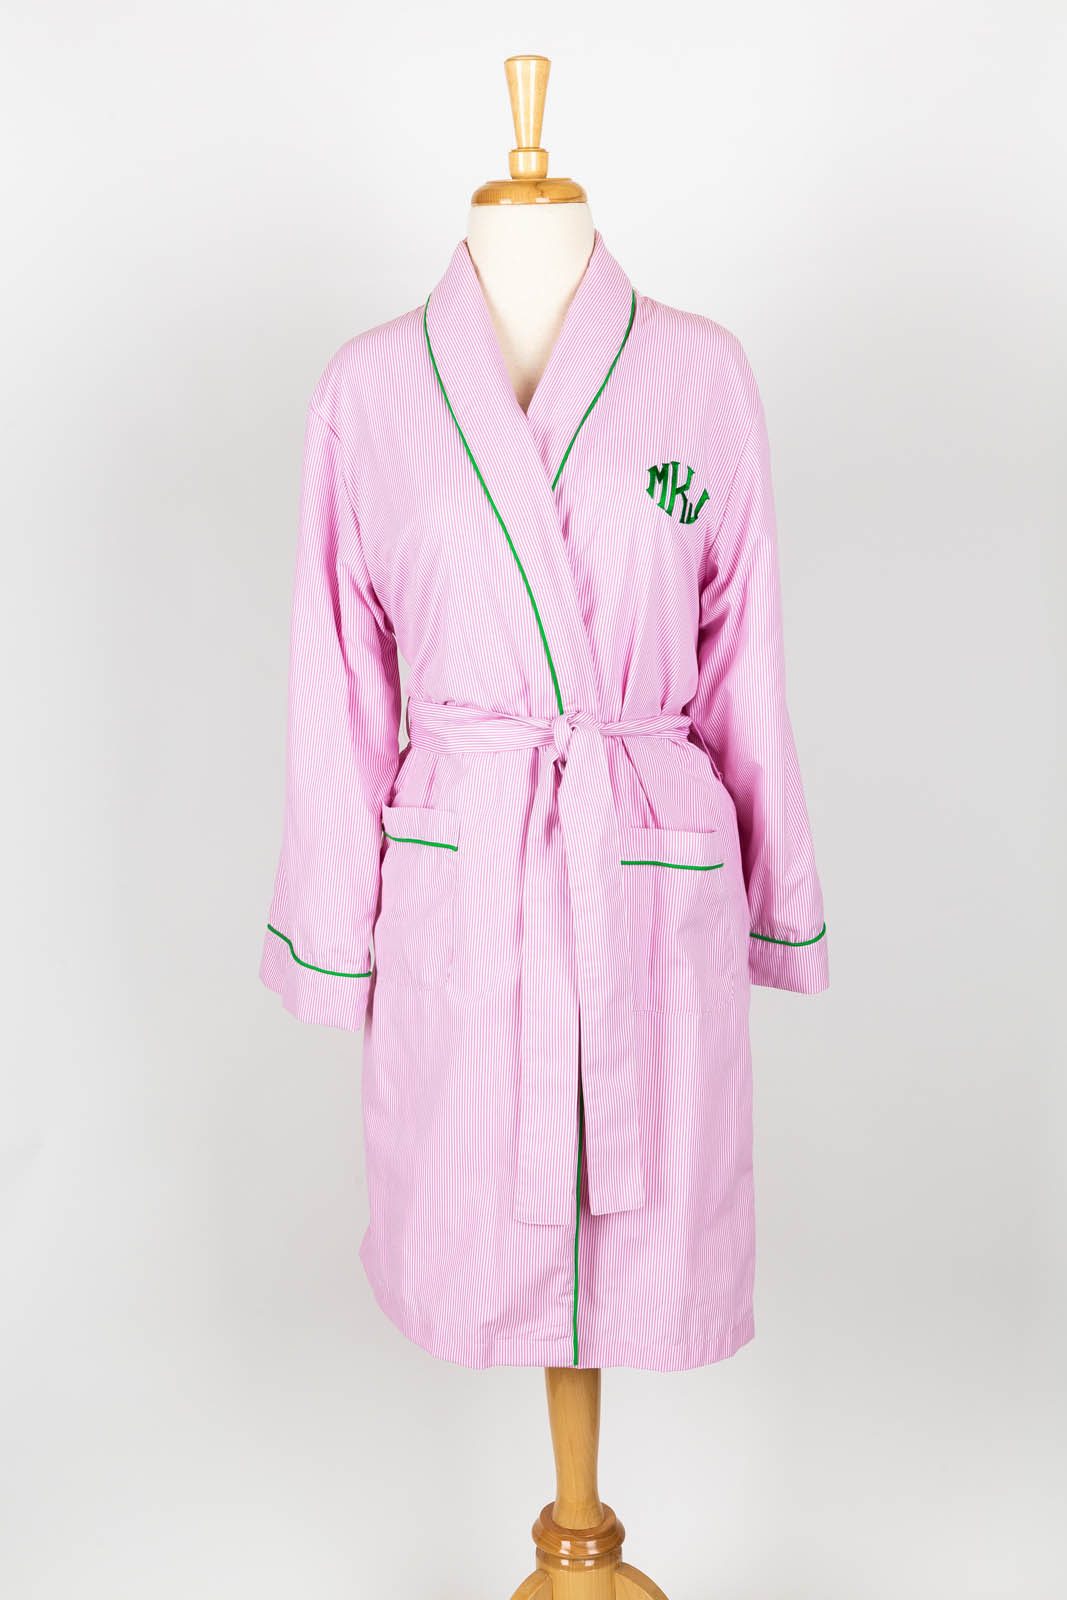 Pink pinstripe terry jersey lined short robe with Faith monogram